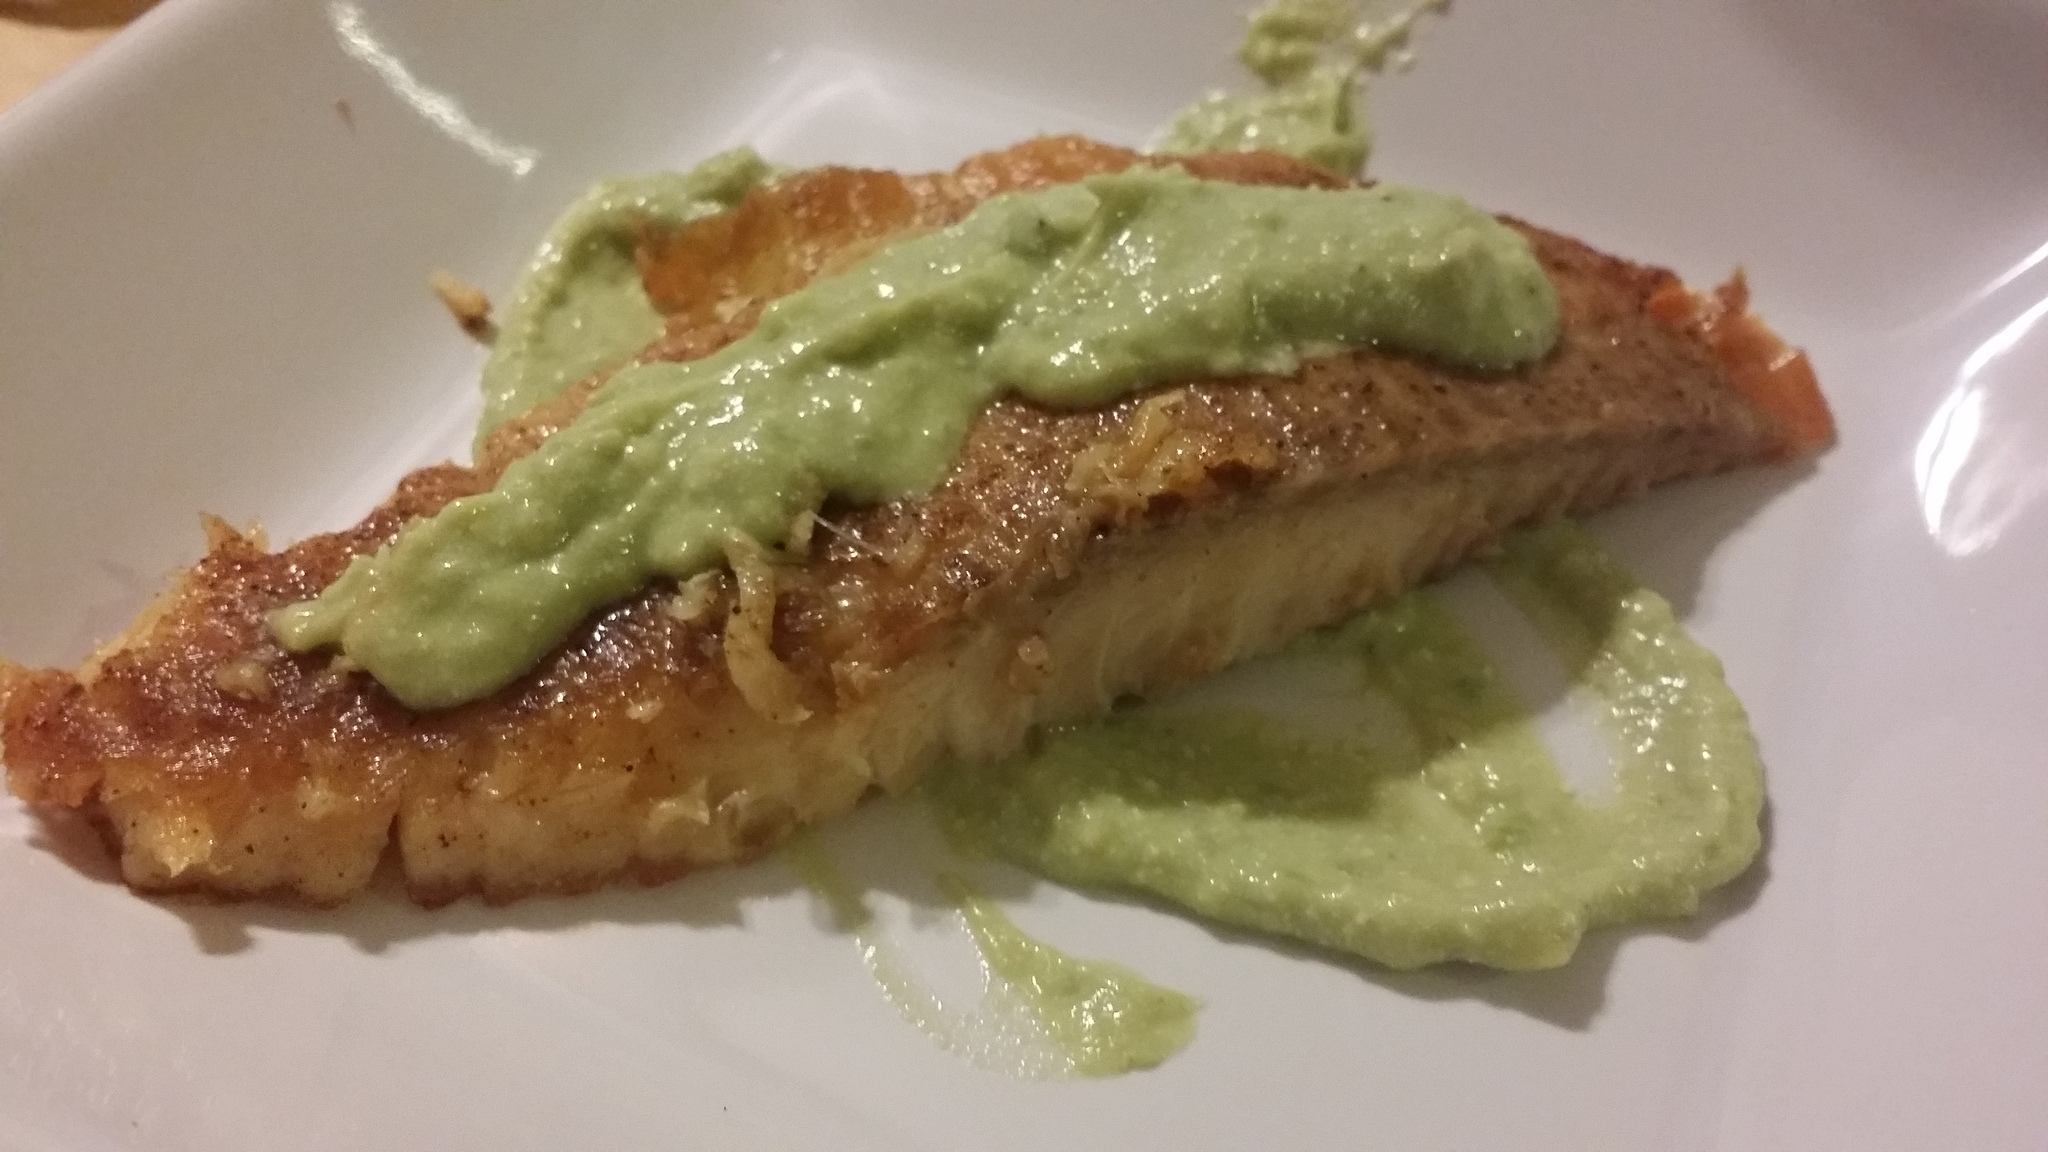 Tilapia with Avocado Aioli